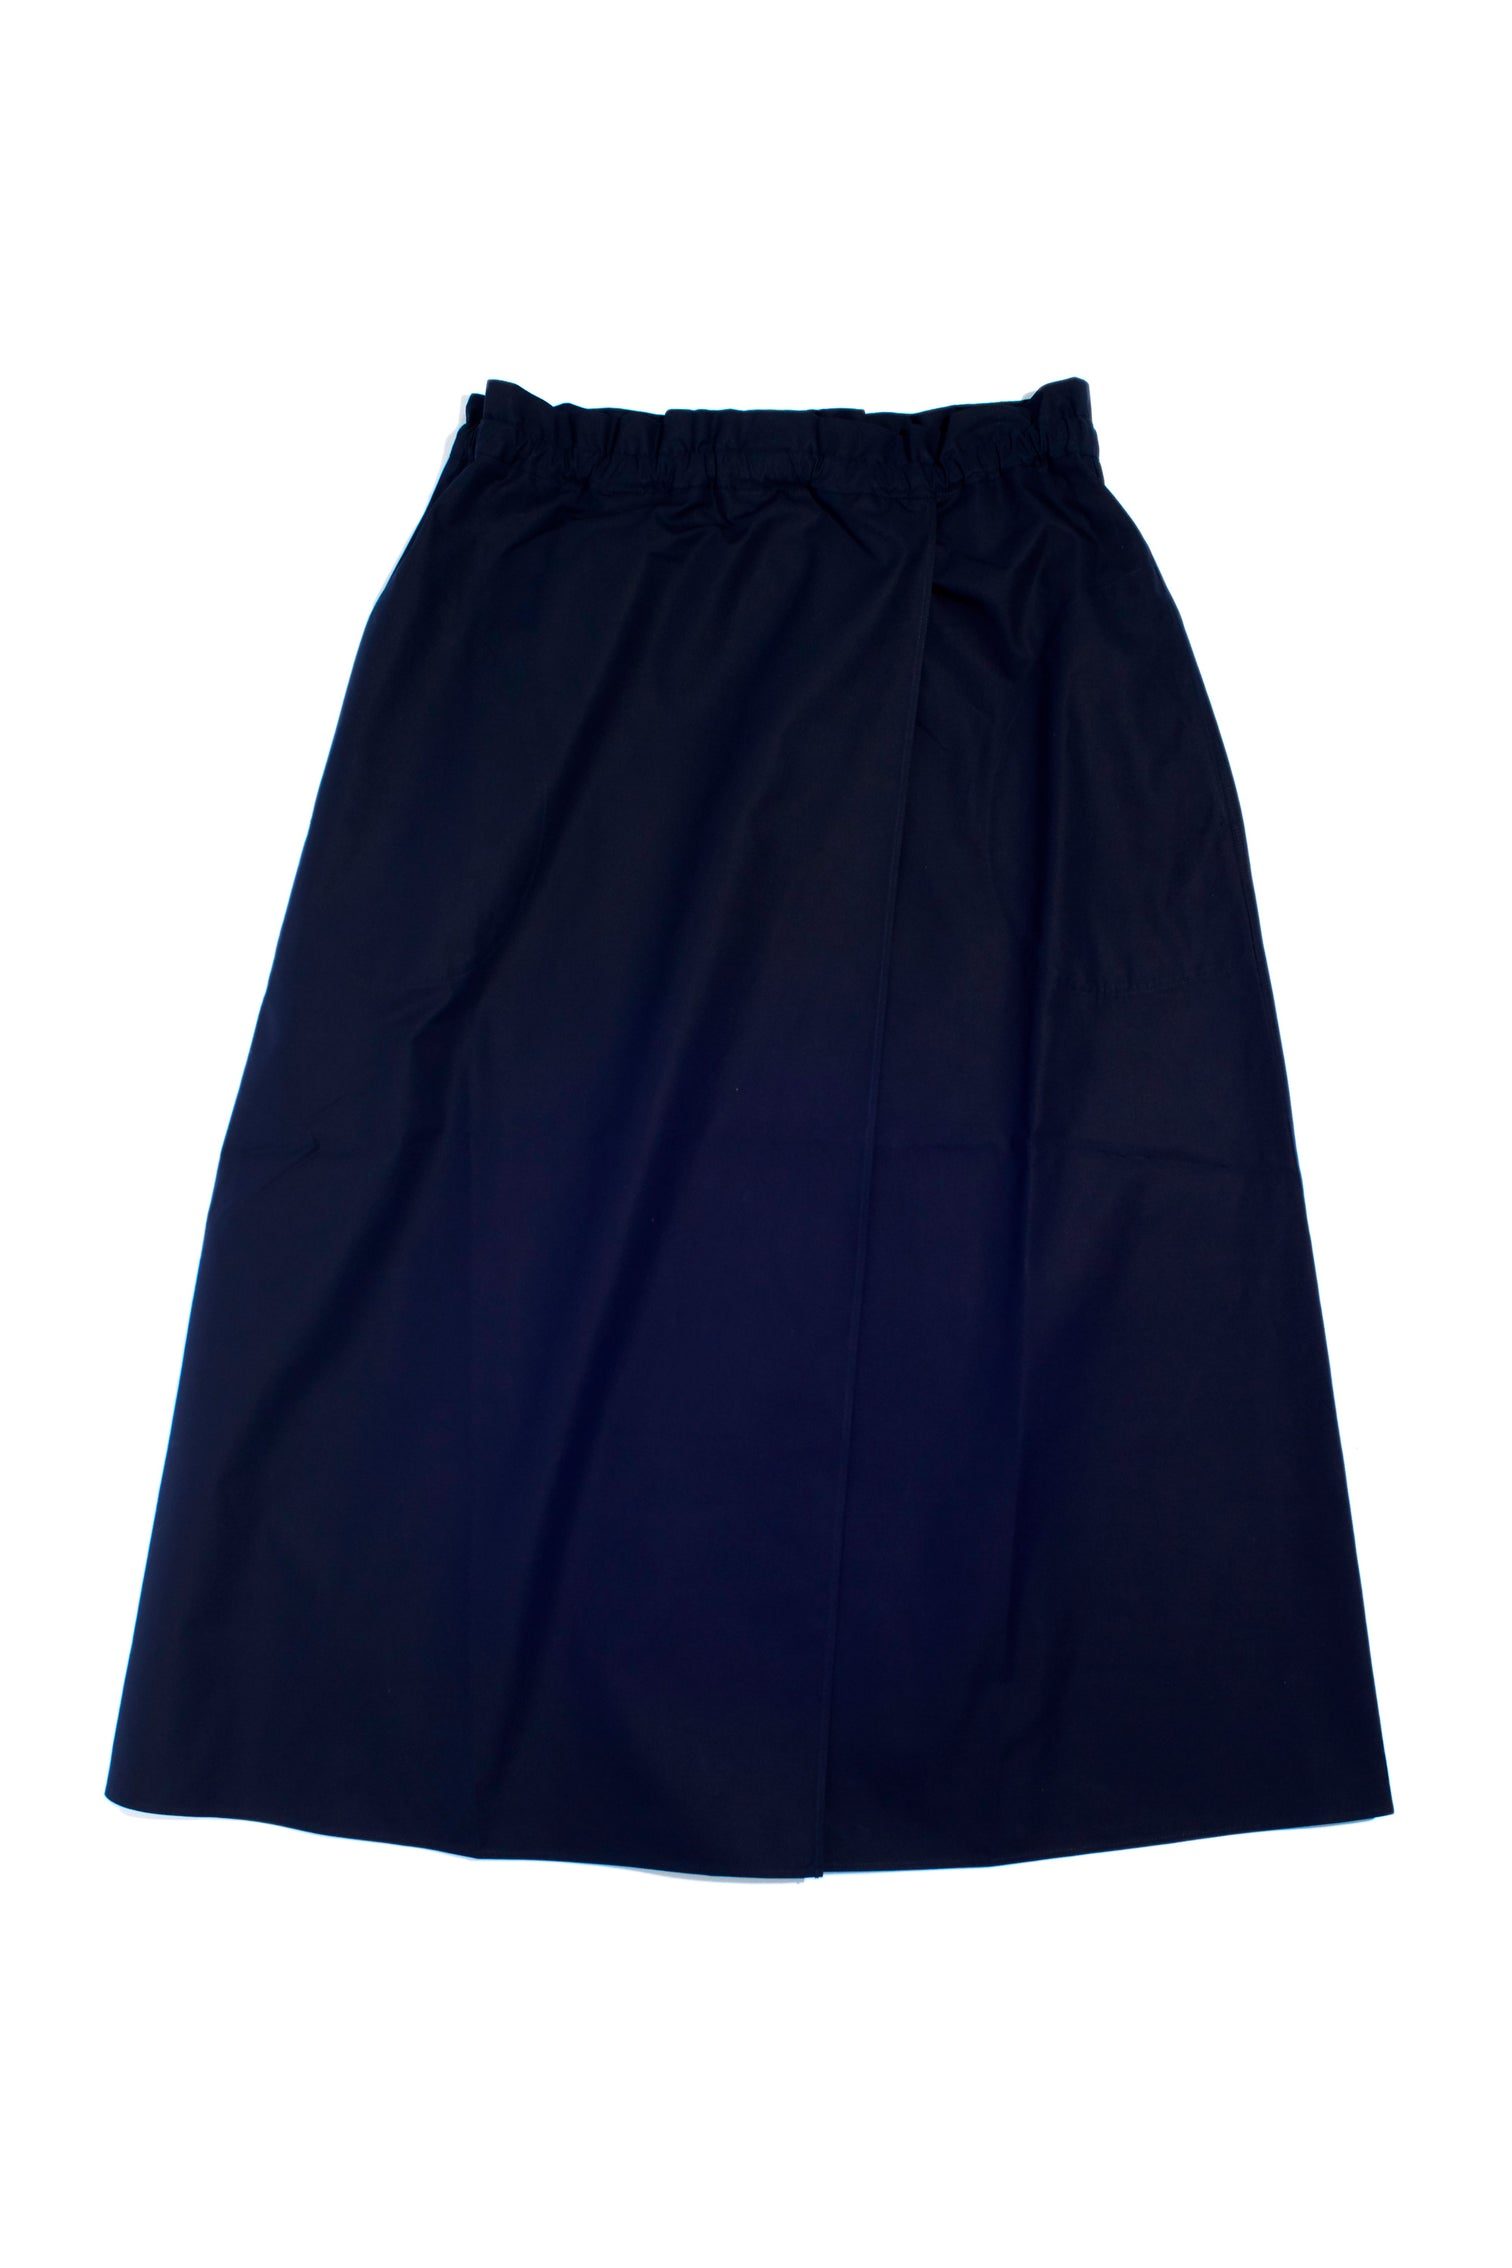 Cotton Wrap Skirt with Pockets